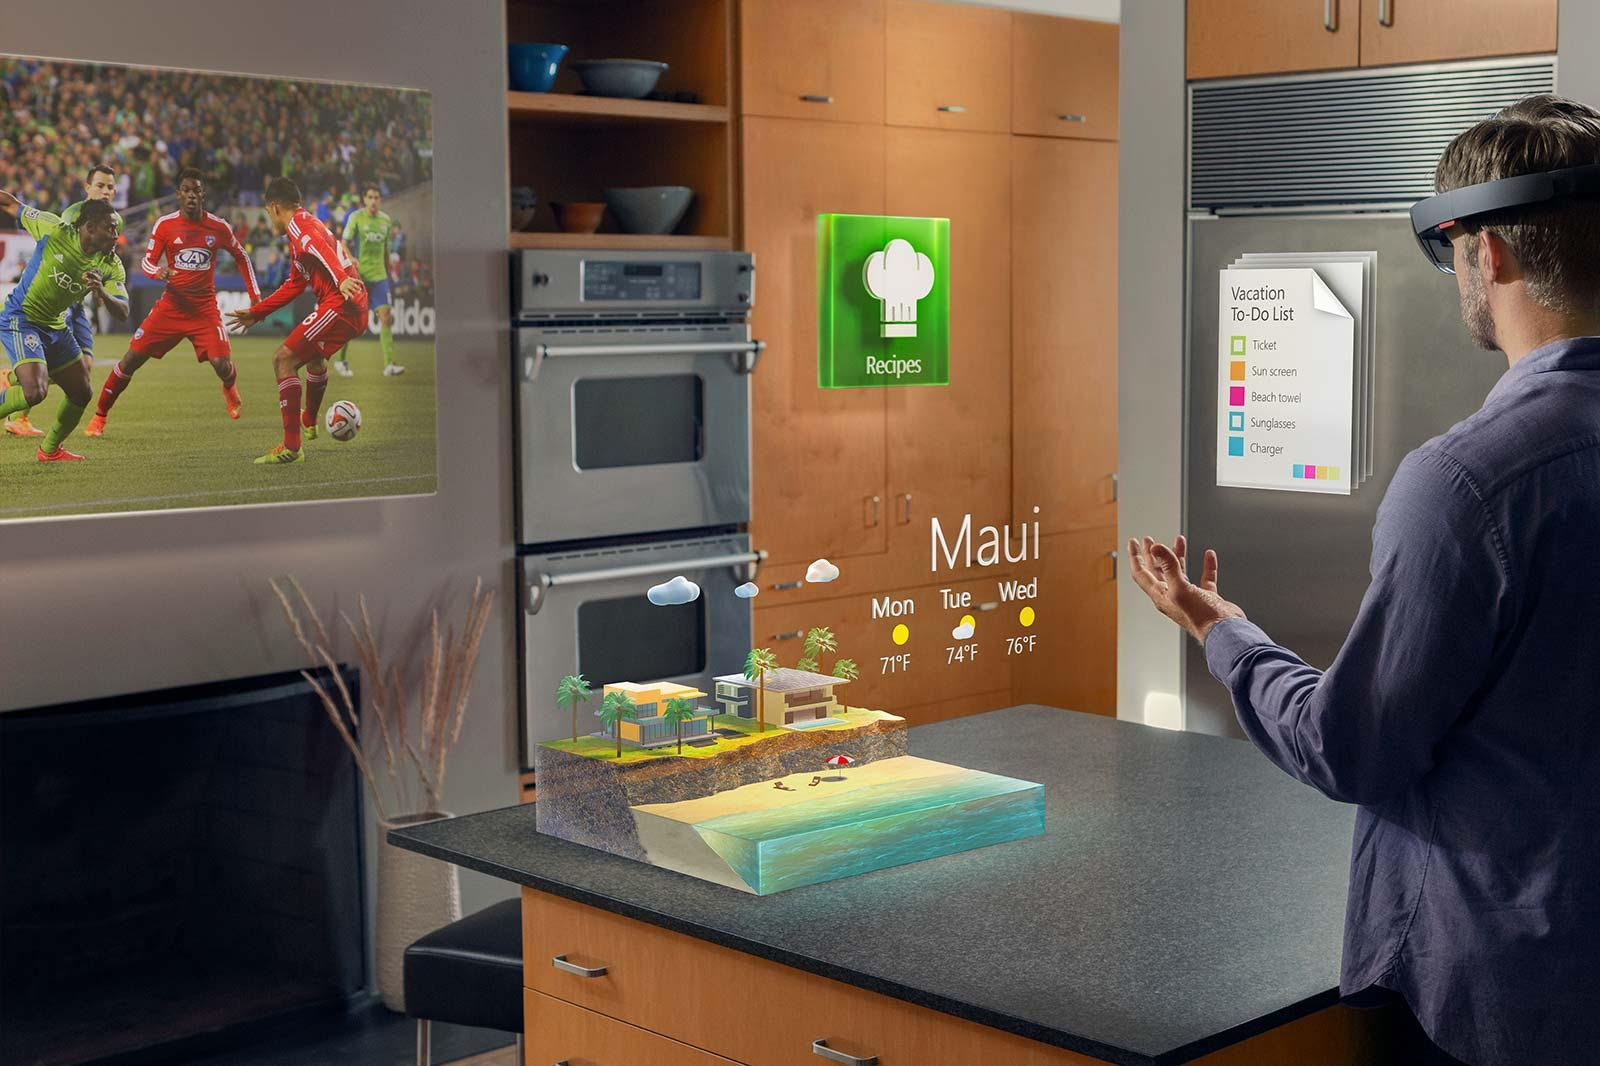 Enable people to experience human content each other in the most realistic way through holograms.